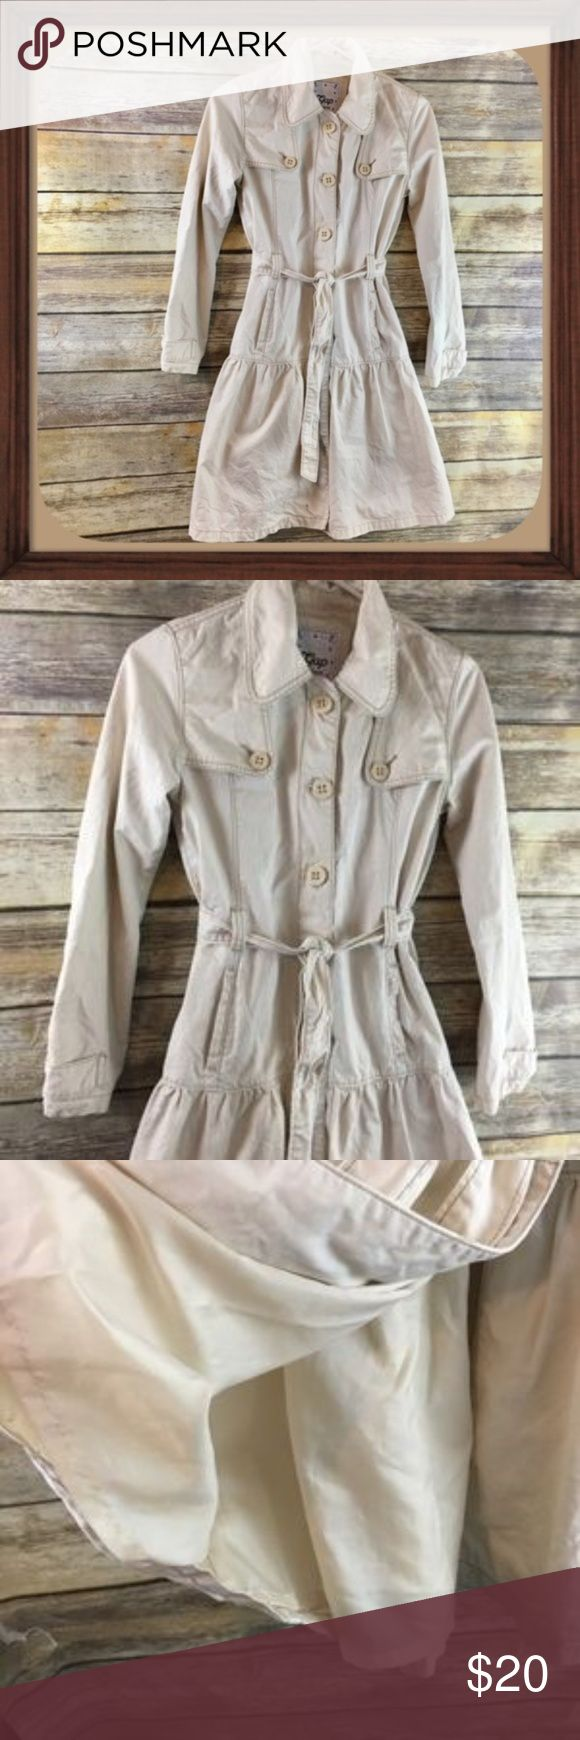 Gap Khaki Girls Trench Coat Size 12 EUC Khaki girls trench coat. Size 12. In excellent used condition. 35 inches long. 22 inch sleeves. 16 inches arm pit to arm pit. Pockets on sides. GAP Jackets & Coats